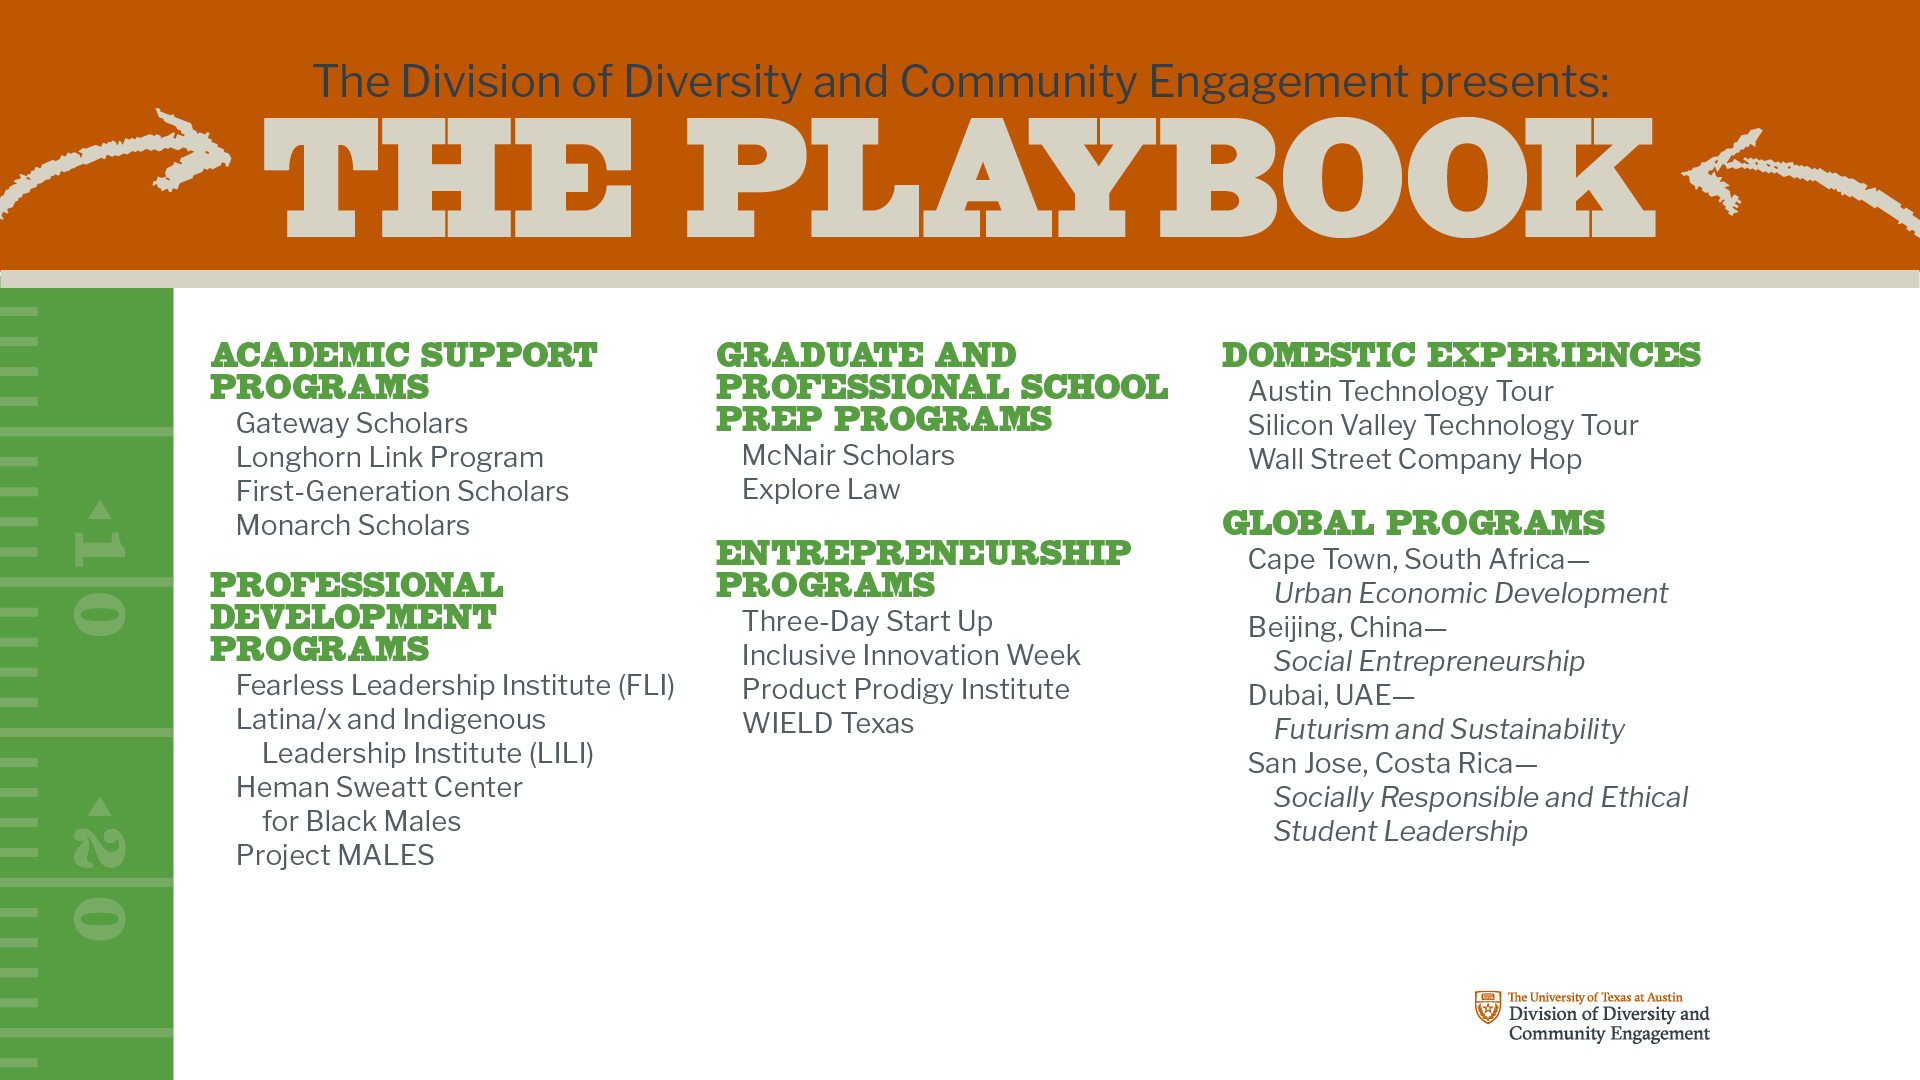 The Playbook: Programs